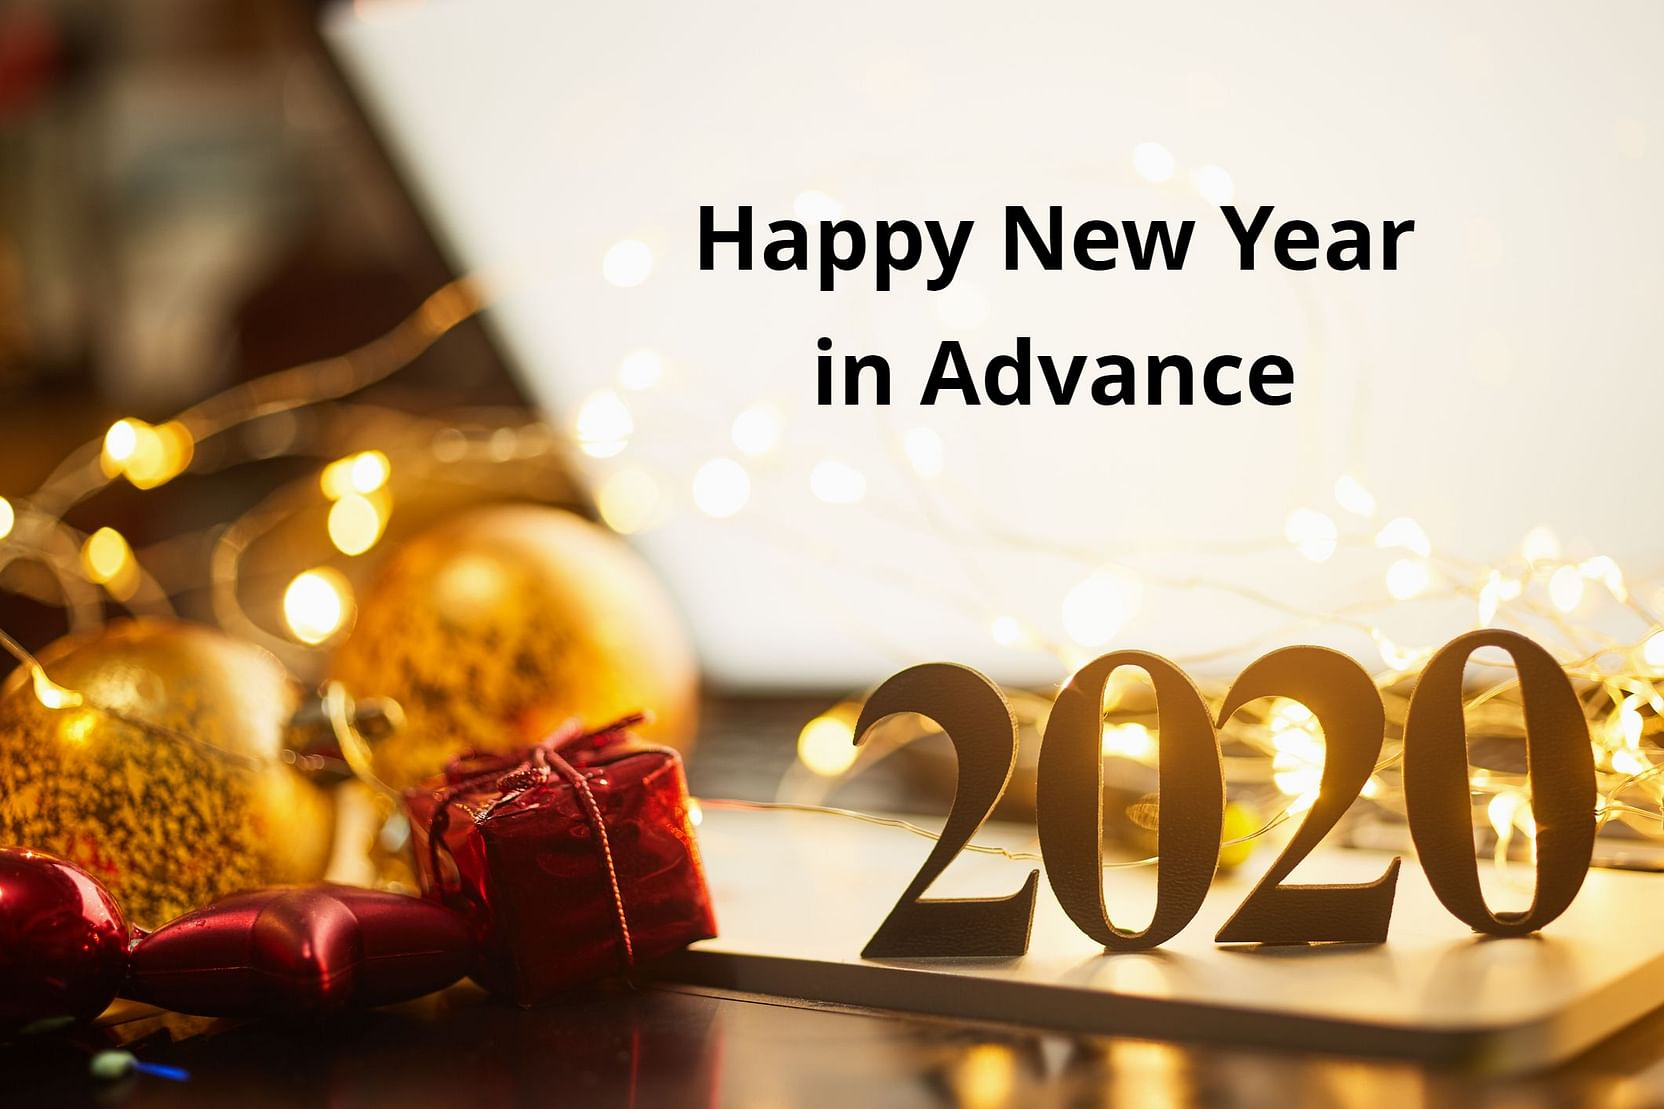 Happy New Year 2020 Wishes In Advance In Hindi And English